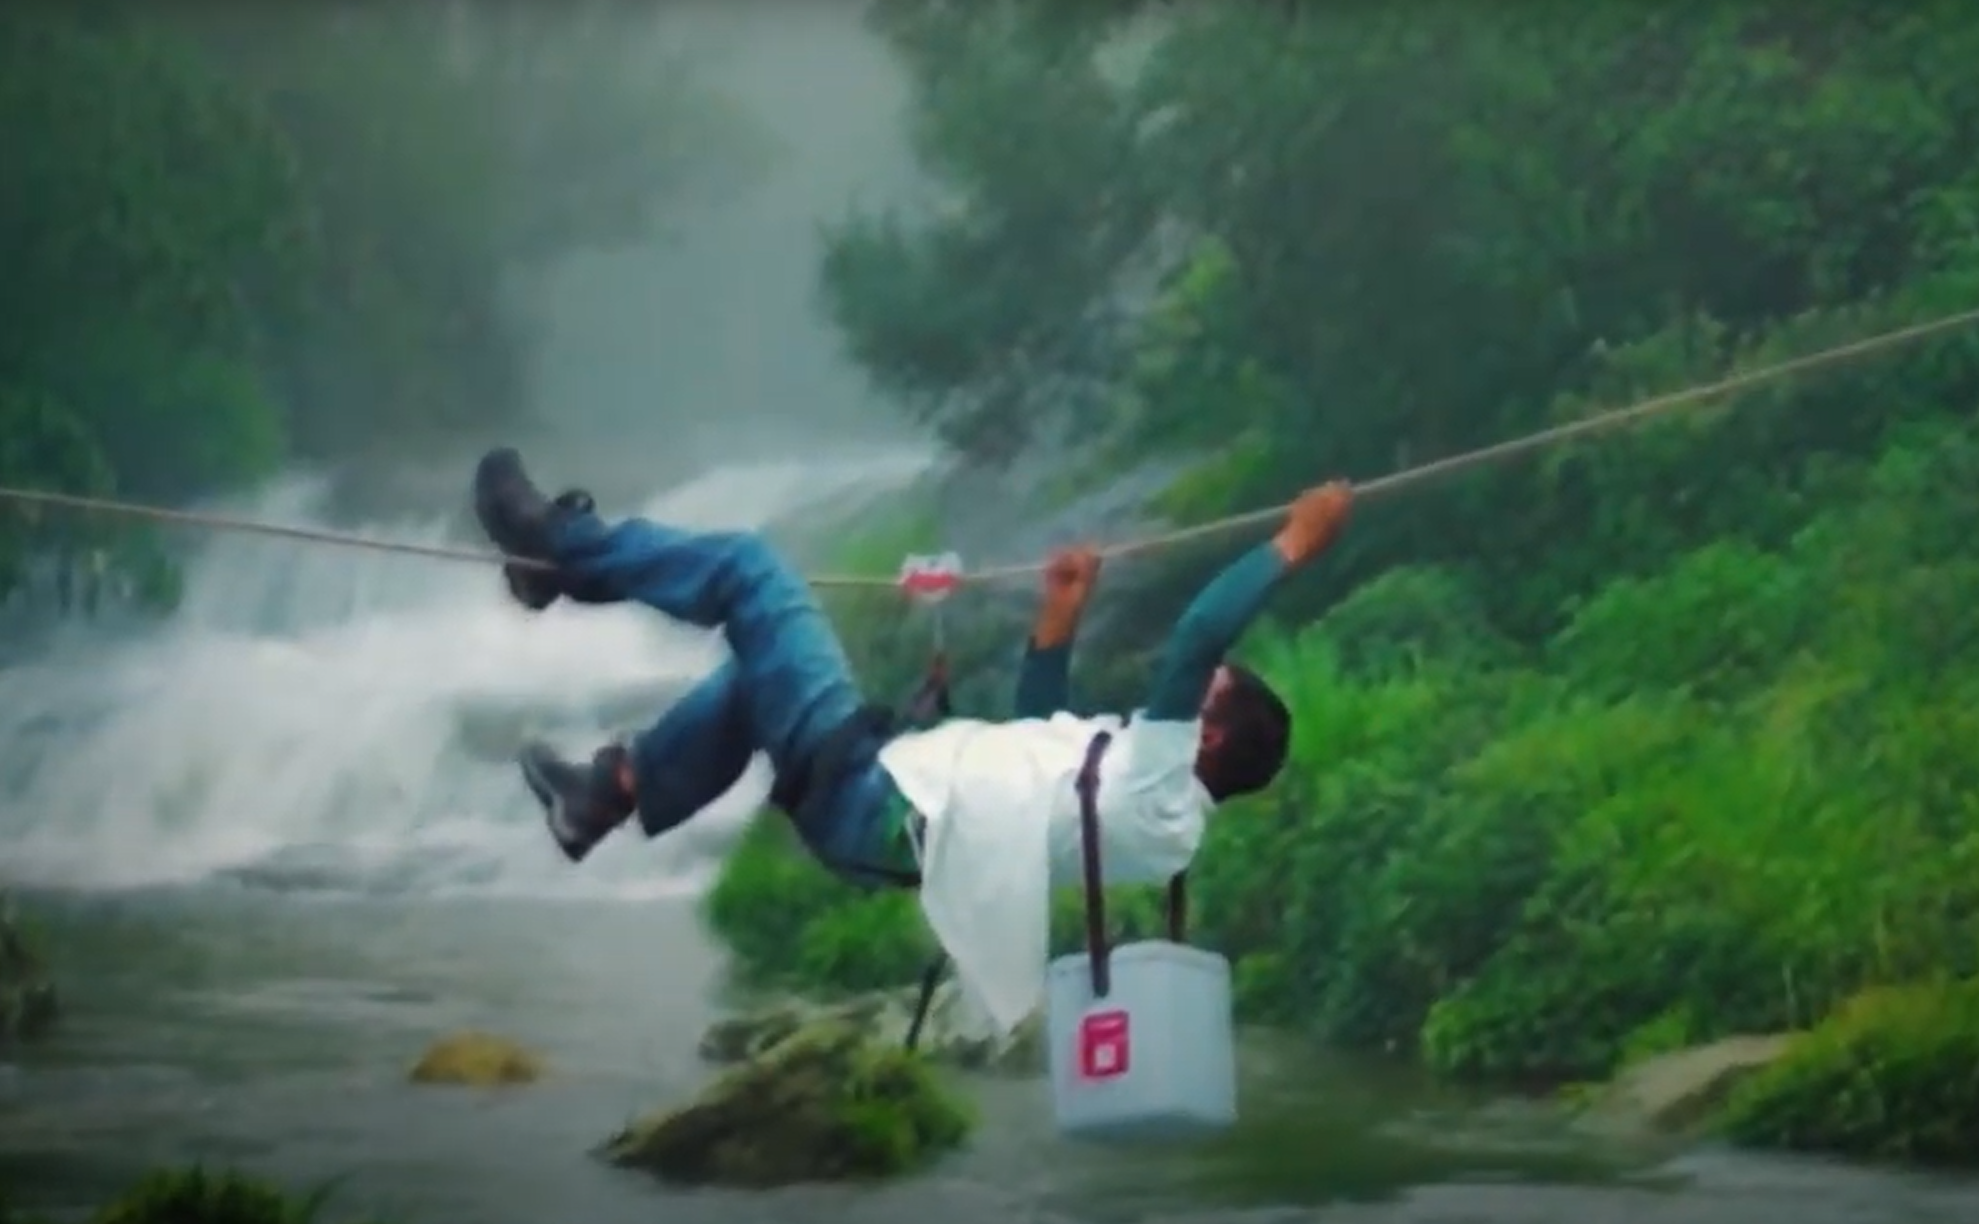 A man hangs from a rope as he carries vaccines over a river to reach a remote area.